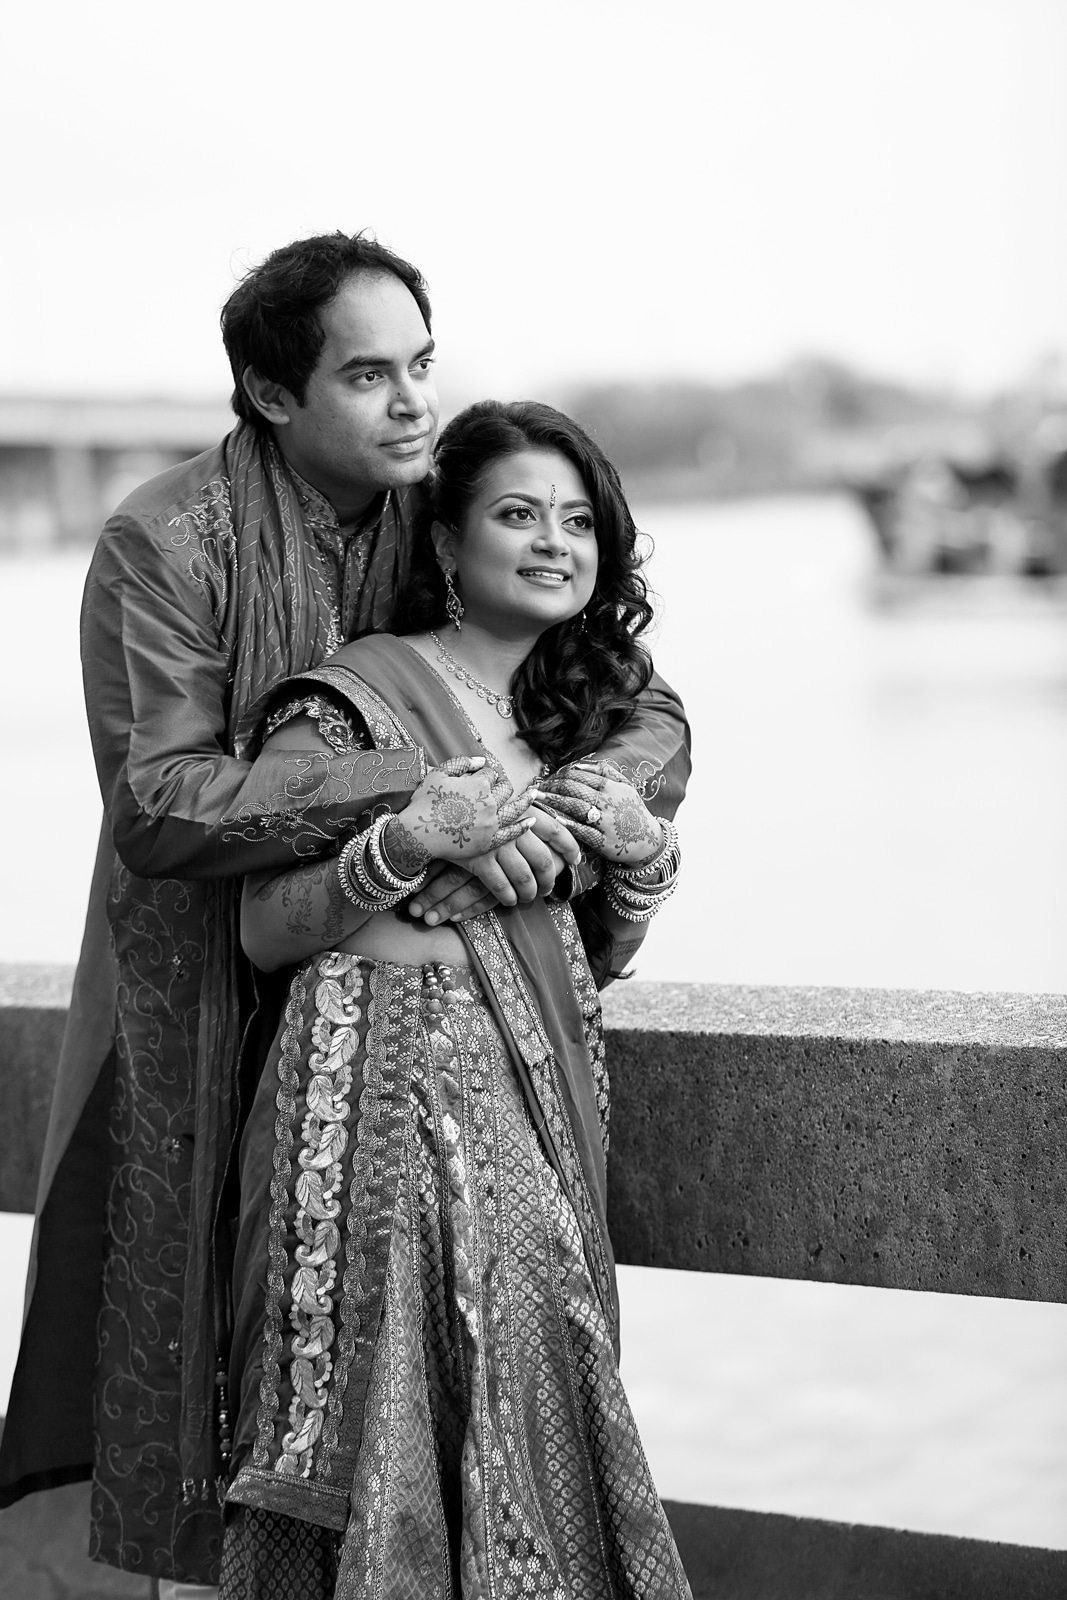 Virginia Beach Indian Wedding Photographer | Sneak Prevew:  Kavitha and Jay's Pre-Wedding Photo Session